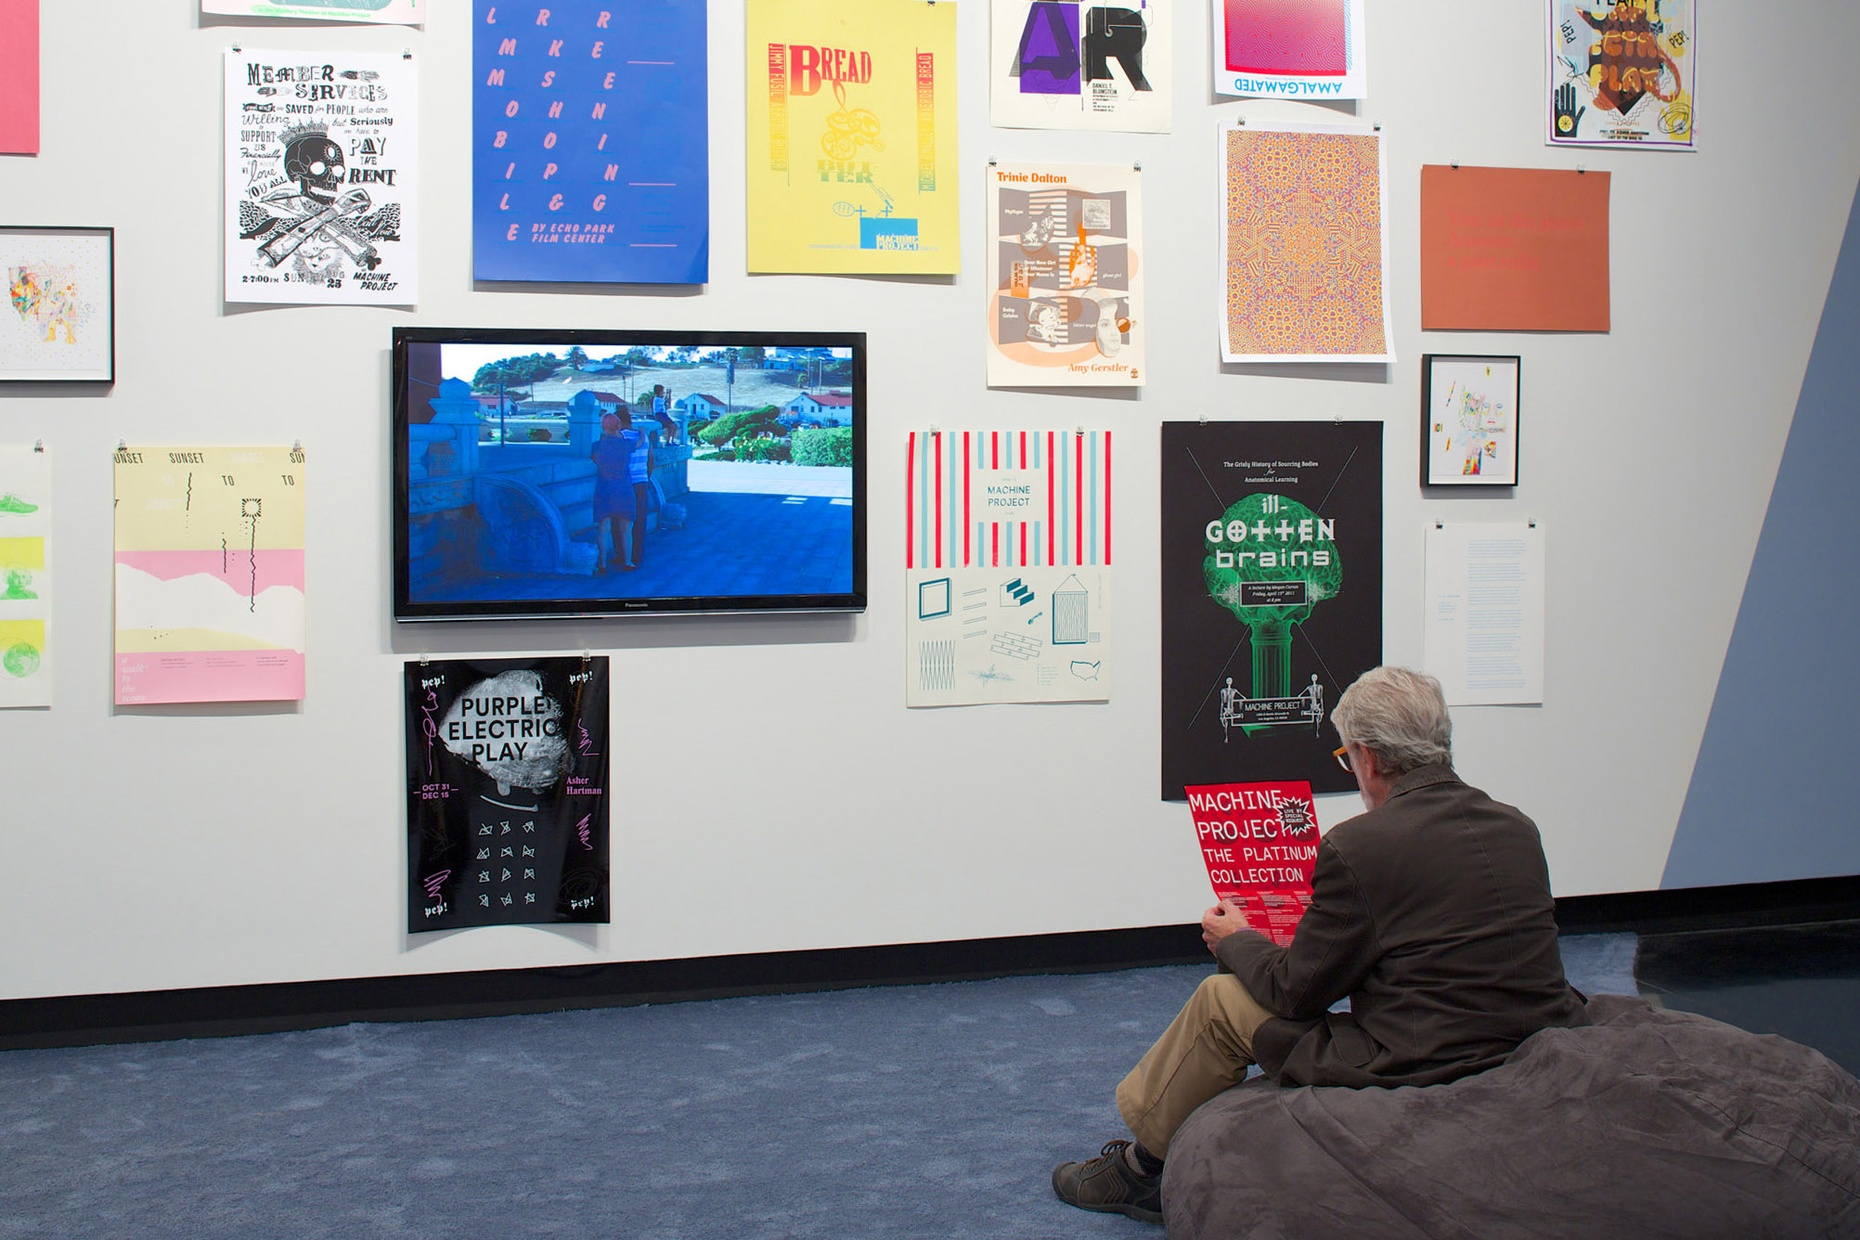 A man sits on a large bean bag chair holding a poster and facing a wall of posters.